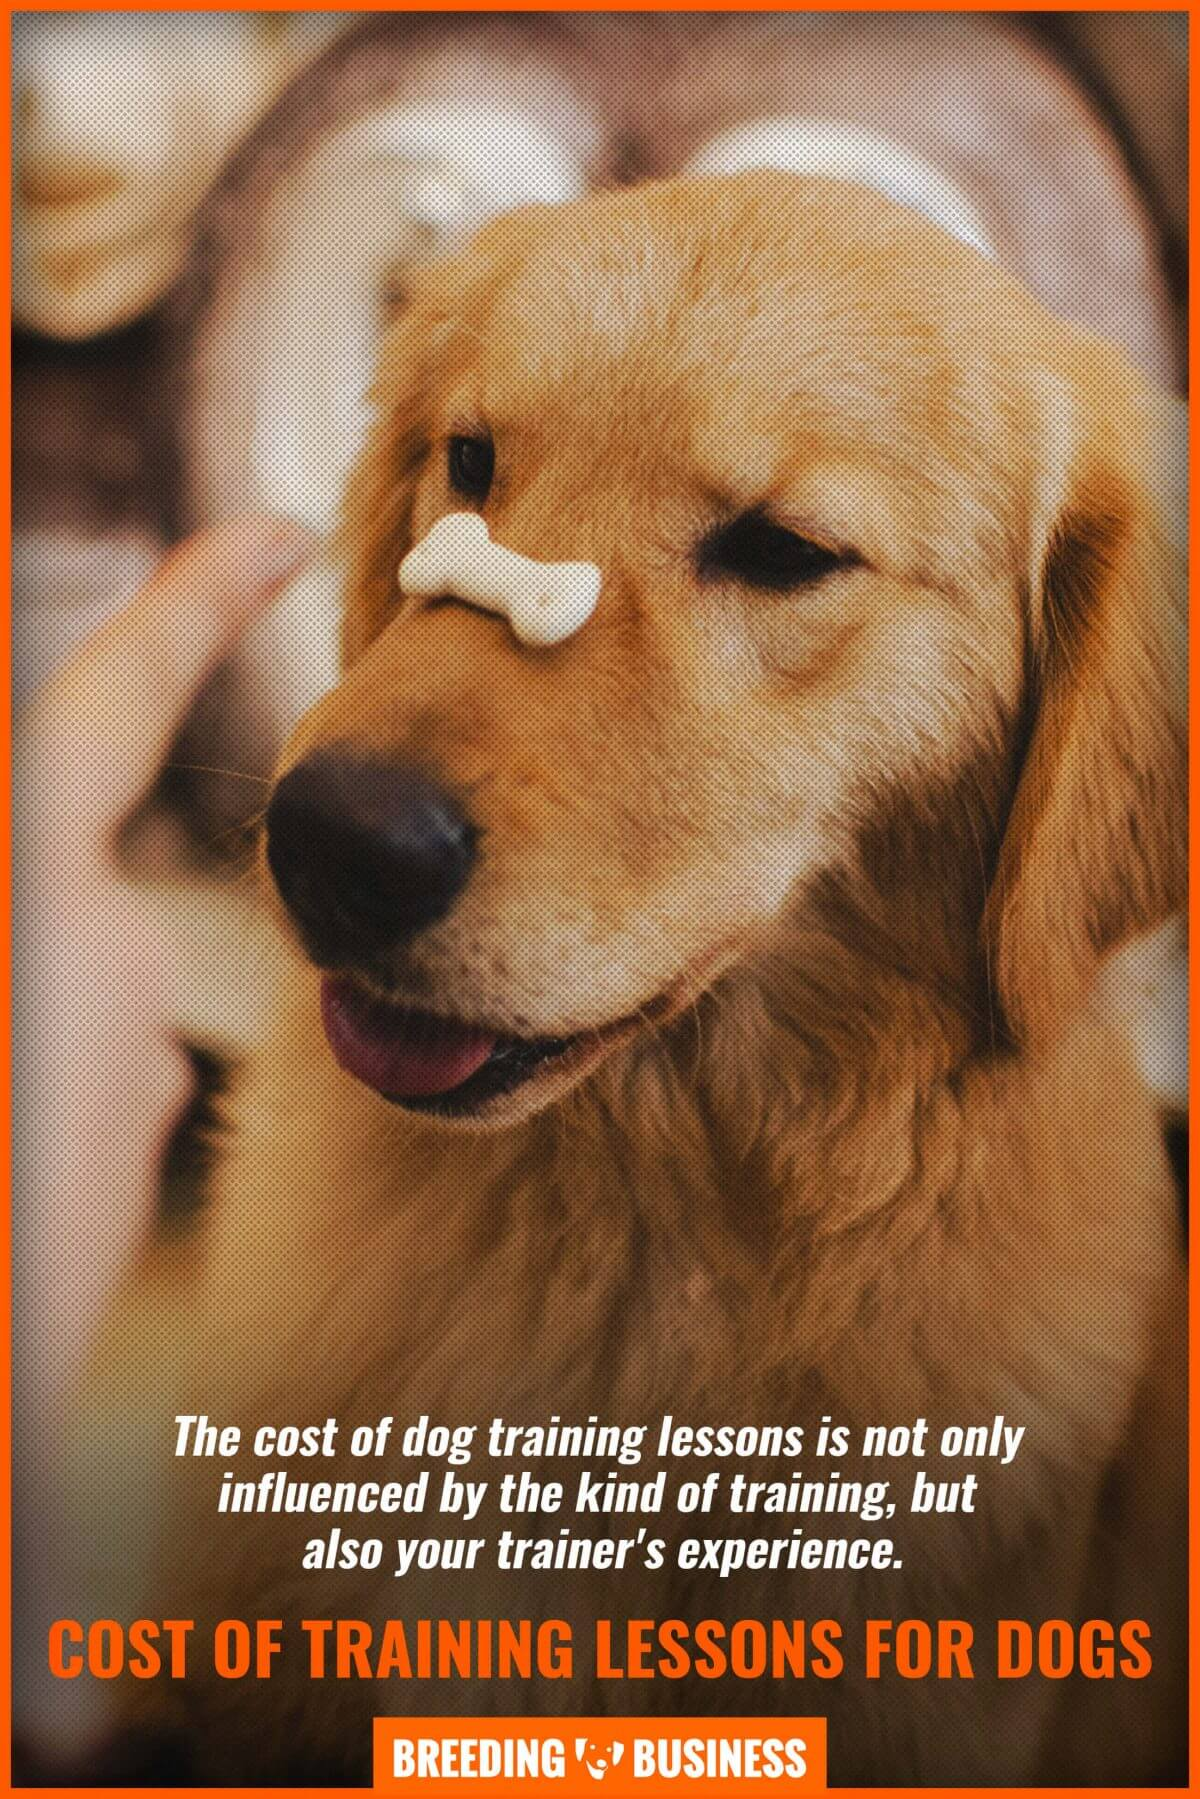 dog training - price of experience